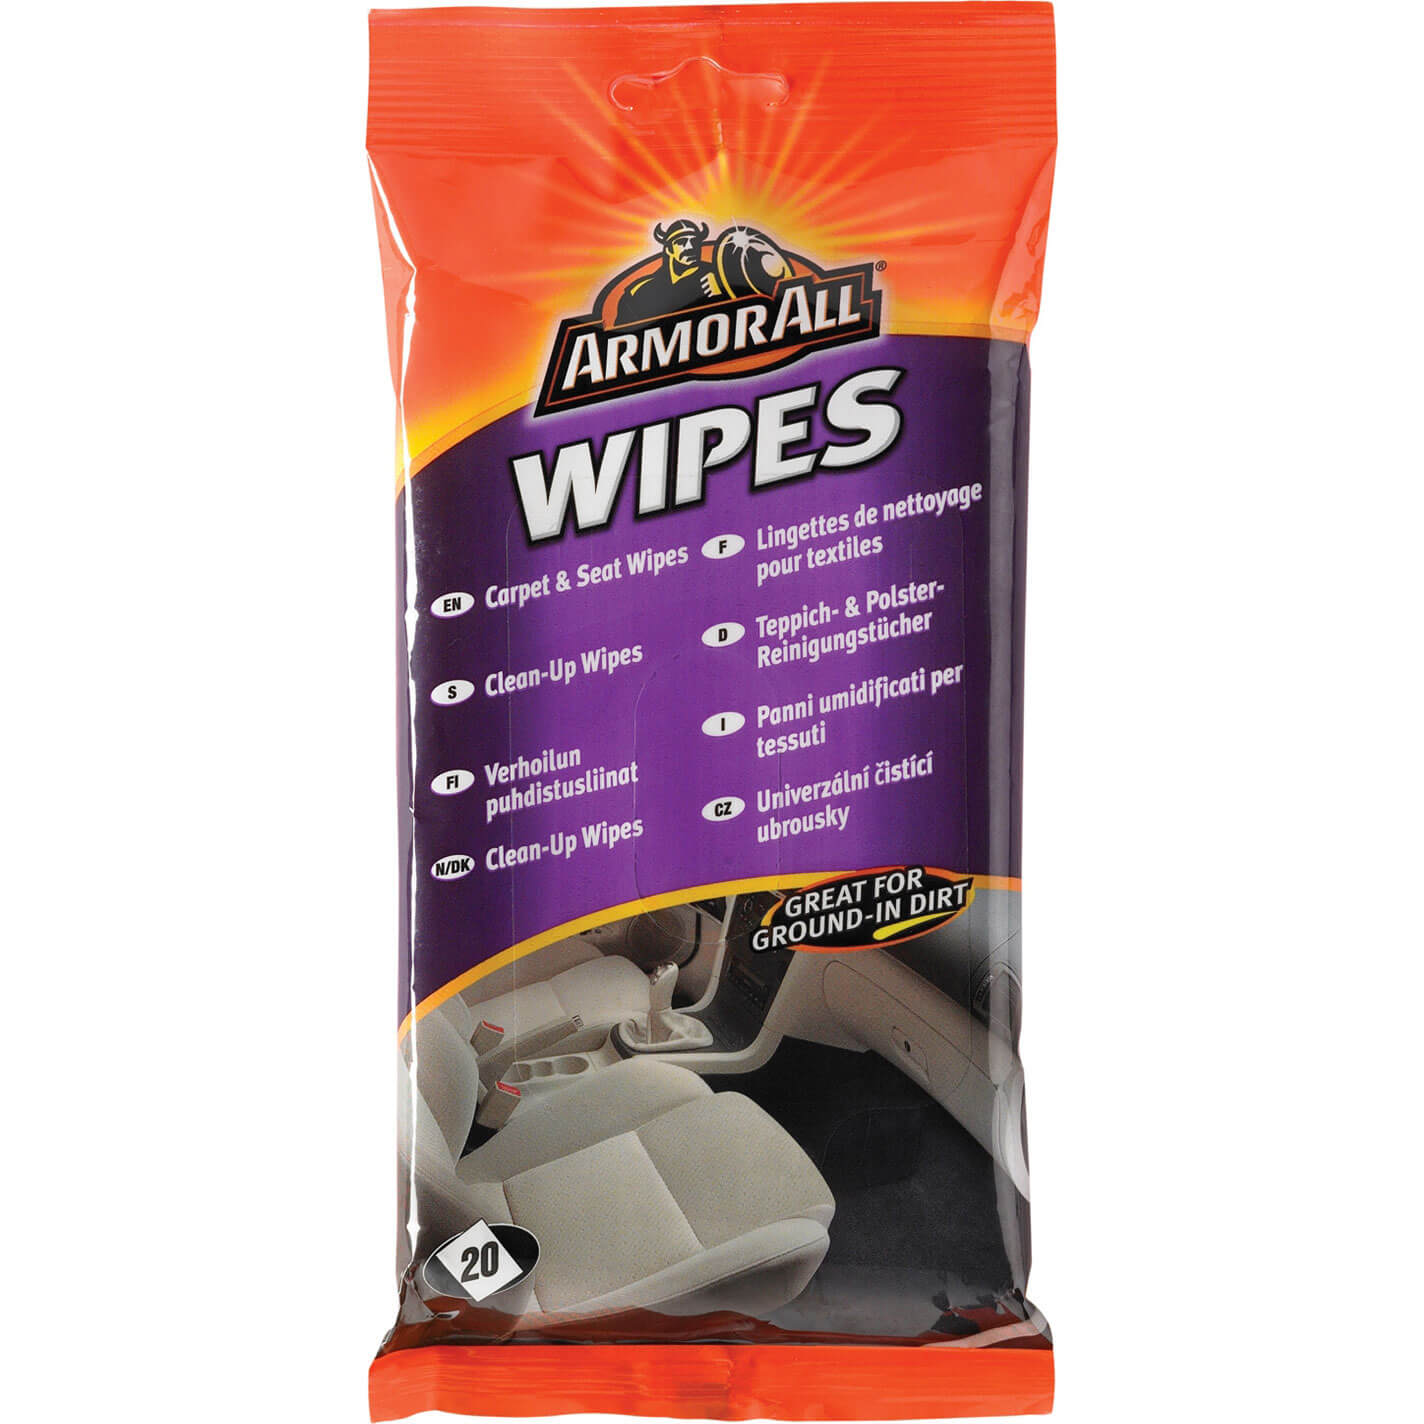 Image of Armorall Carpet & Seat Wipes Pouch Pack of 20